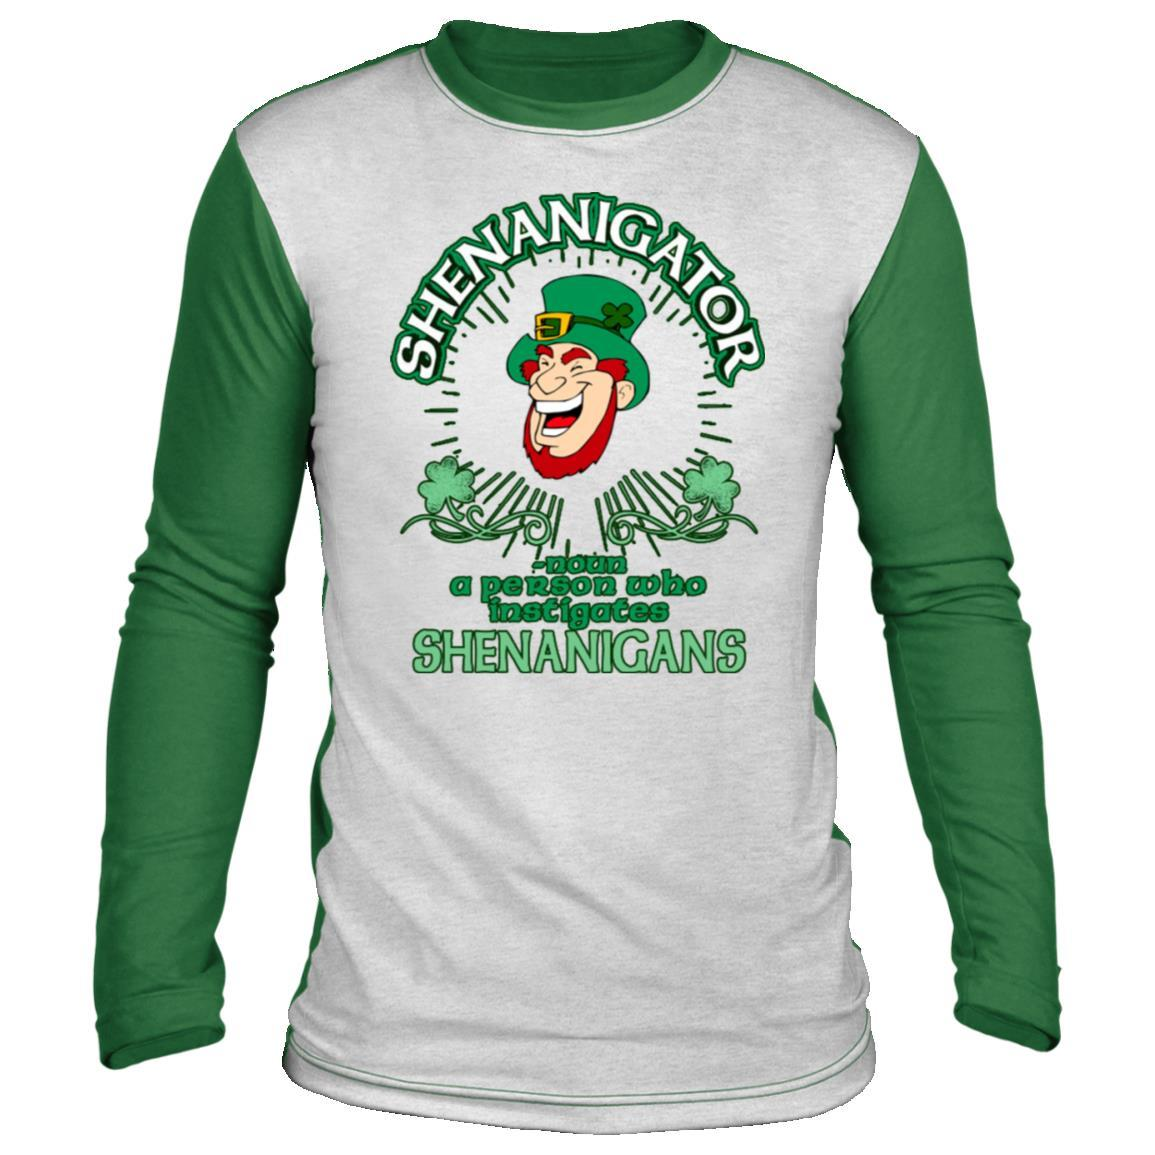 Shenanigator St Patrick's Day Long Sleeve Shirt